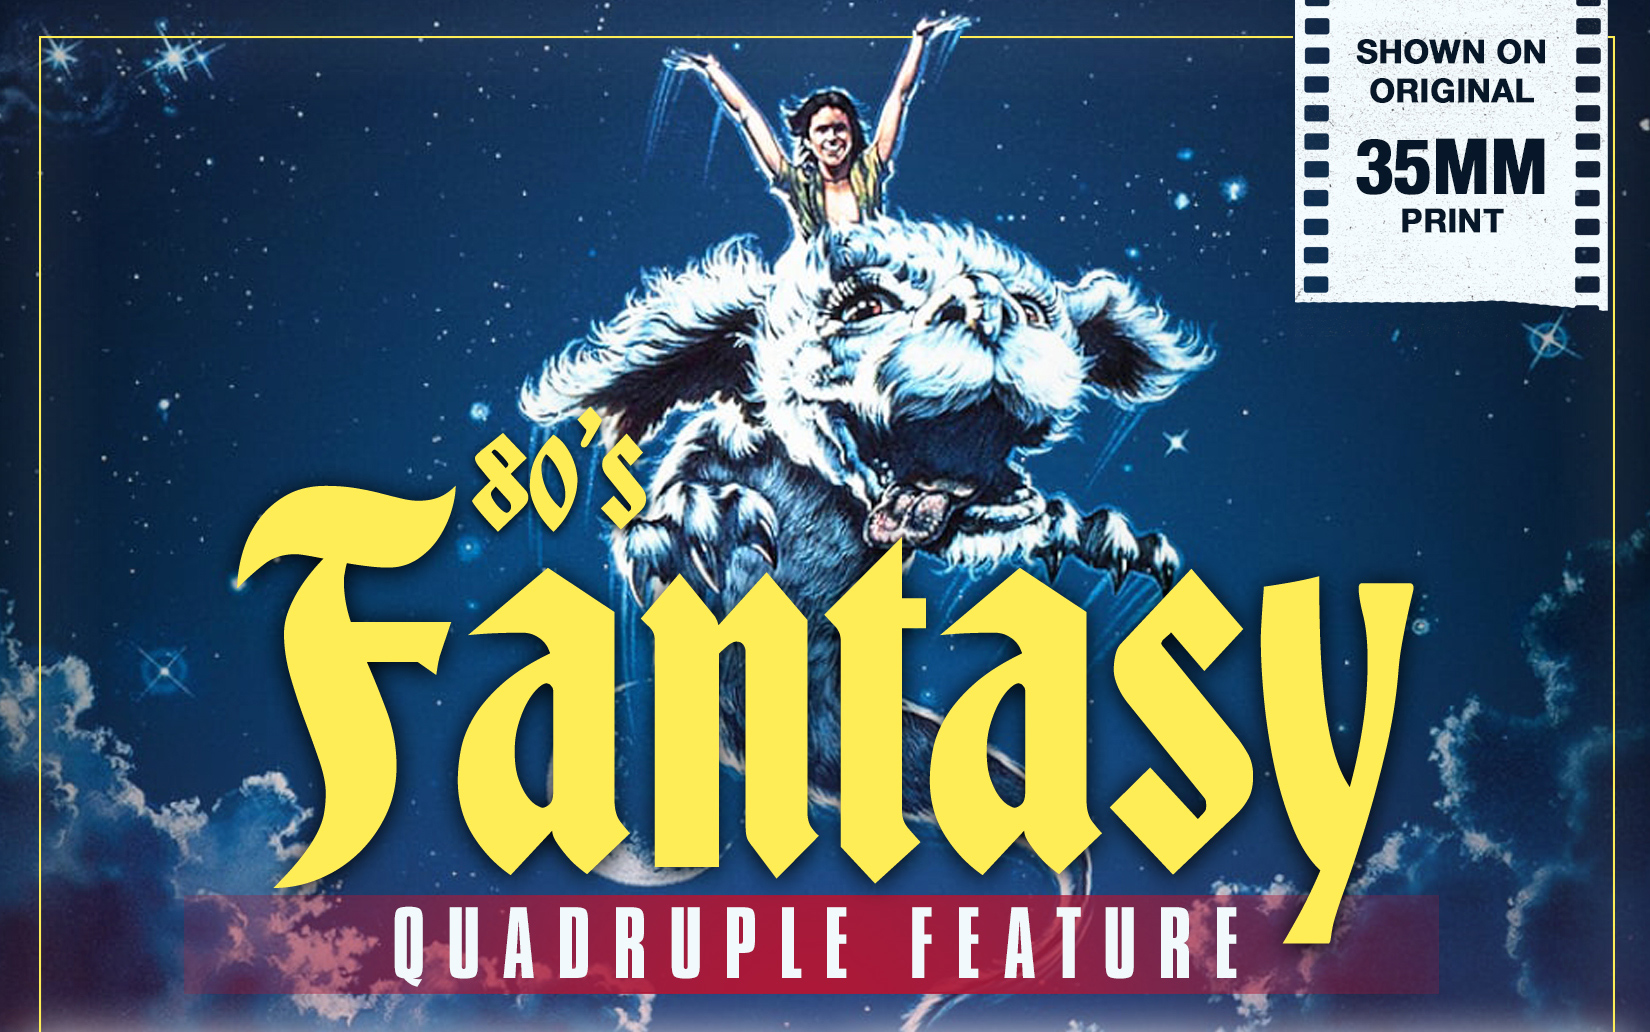 Quadruple feature of '80s fantasy movies coming to big screen in Syracuse